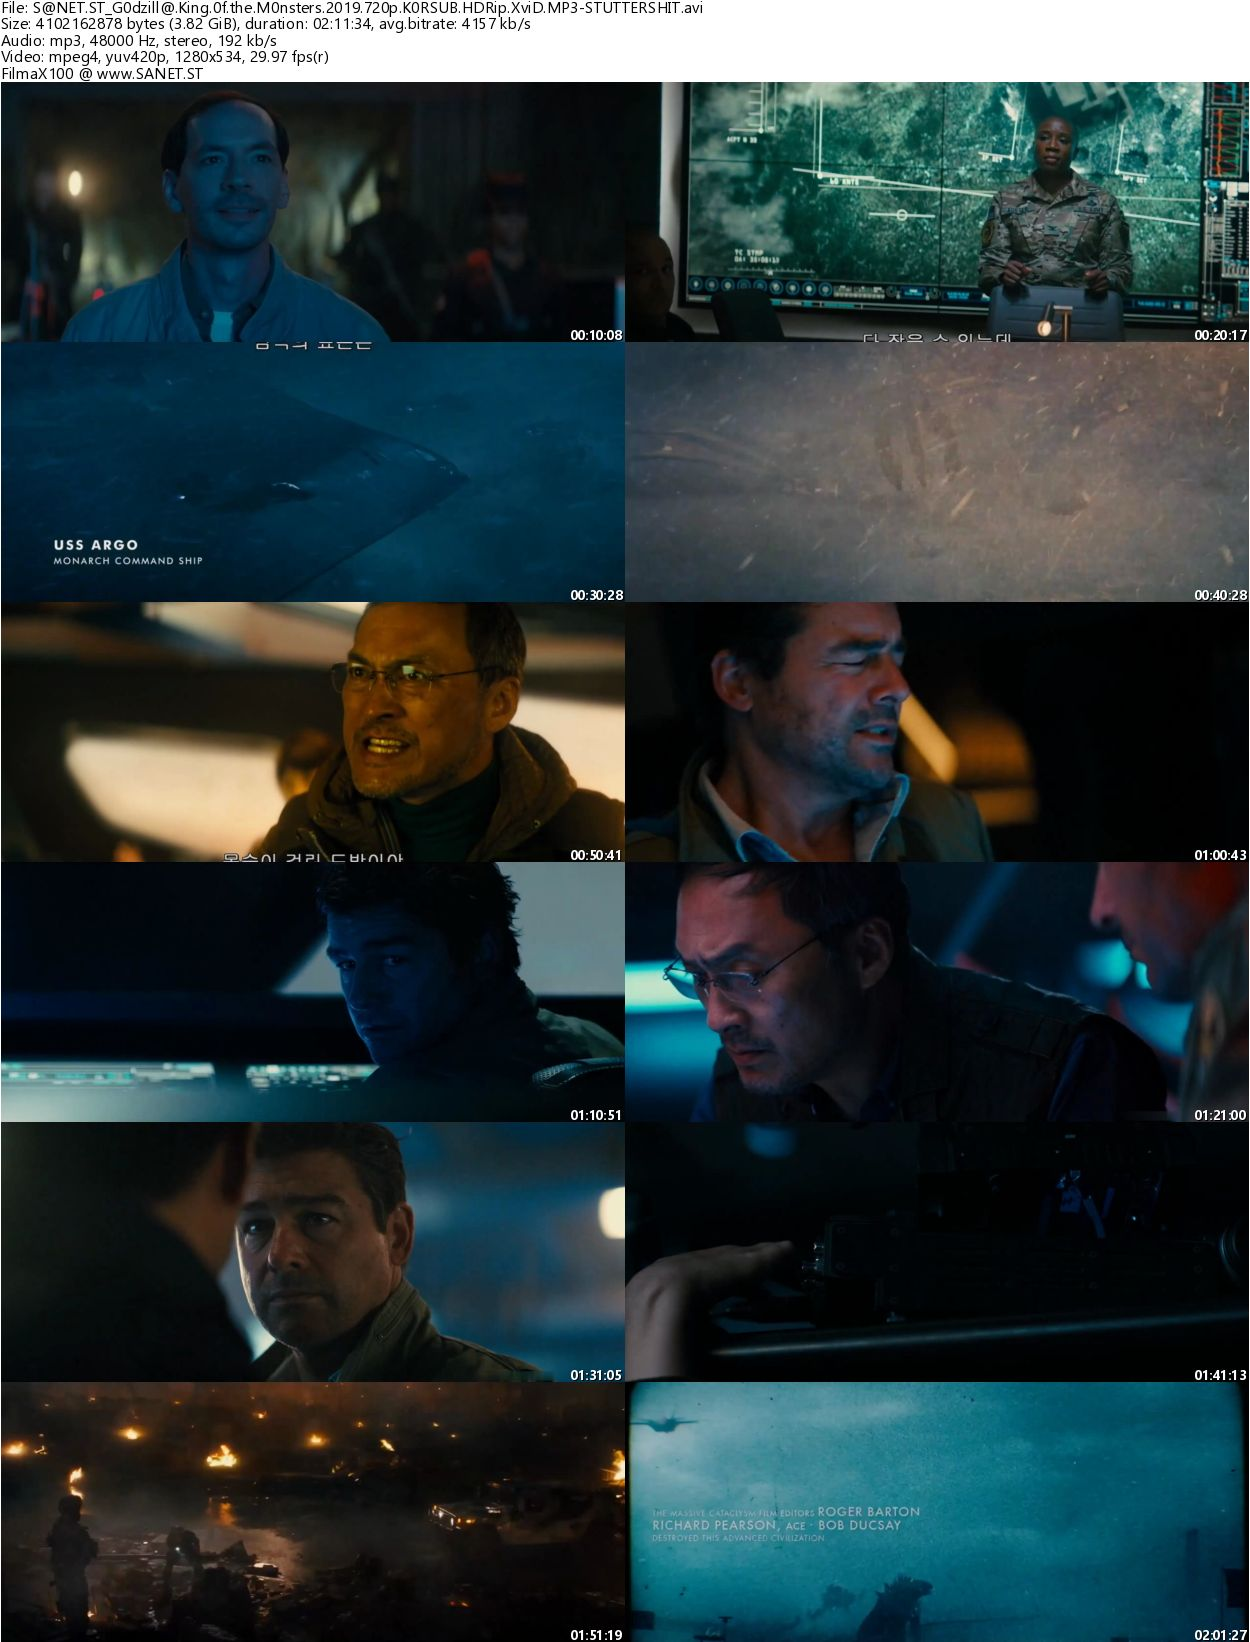 Download Godzilla King of the Monsters 2019 720p KOR-SUB HDRip XviD